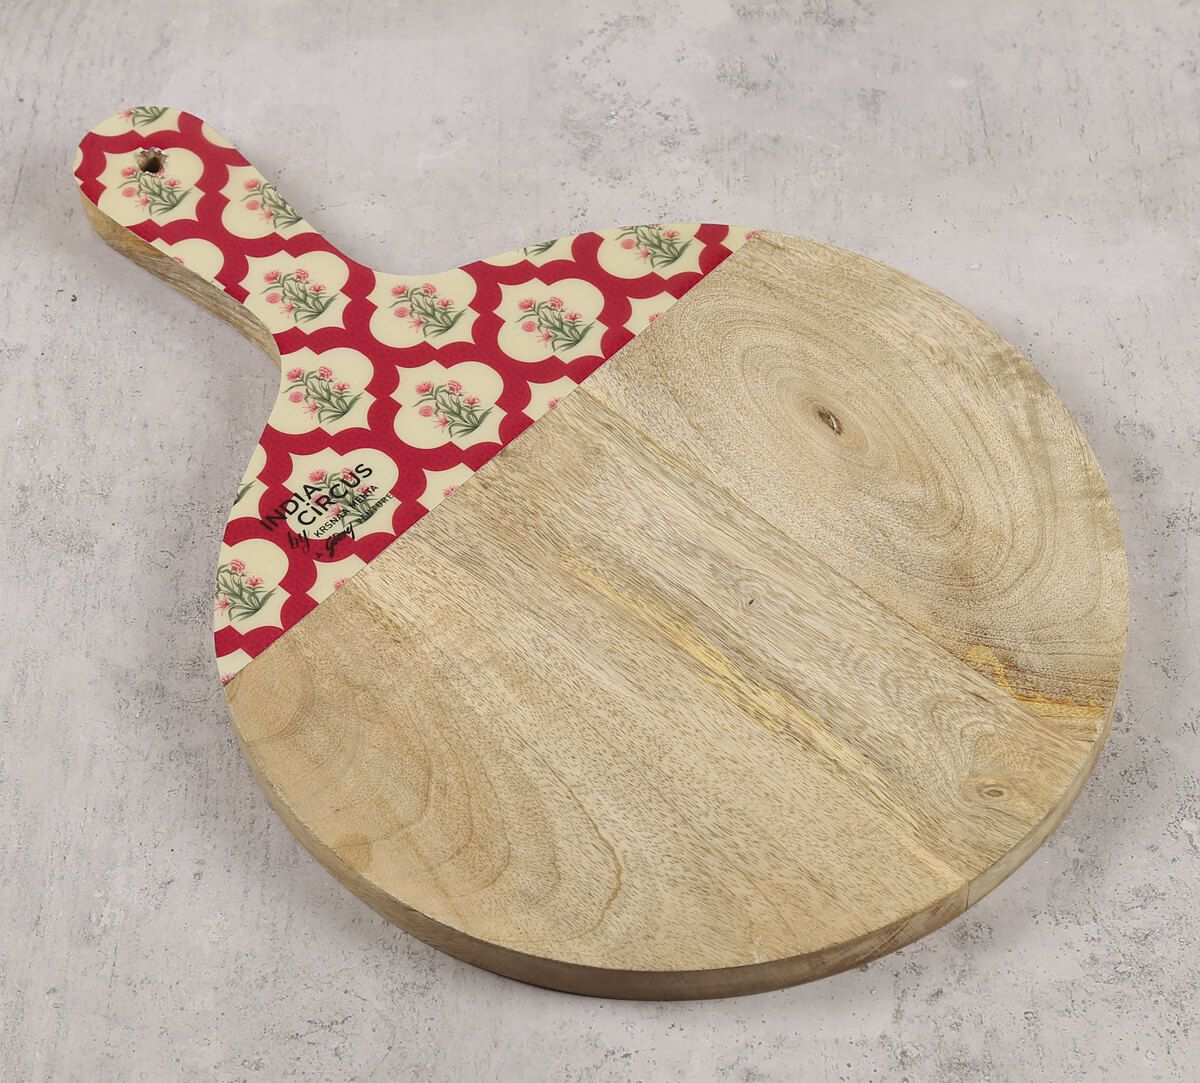 India Circus by Krsnaa Mehta Poppy Flower Scarlet Chopping Board